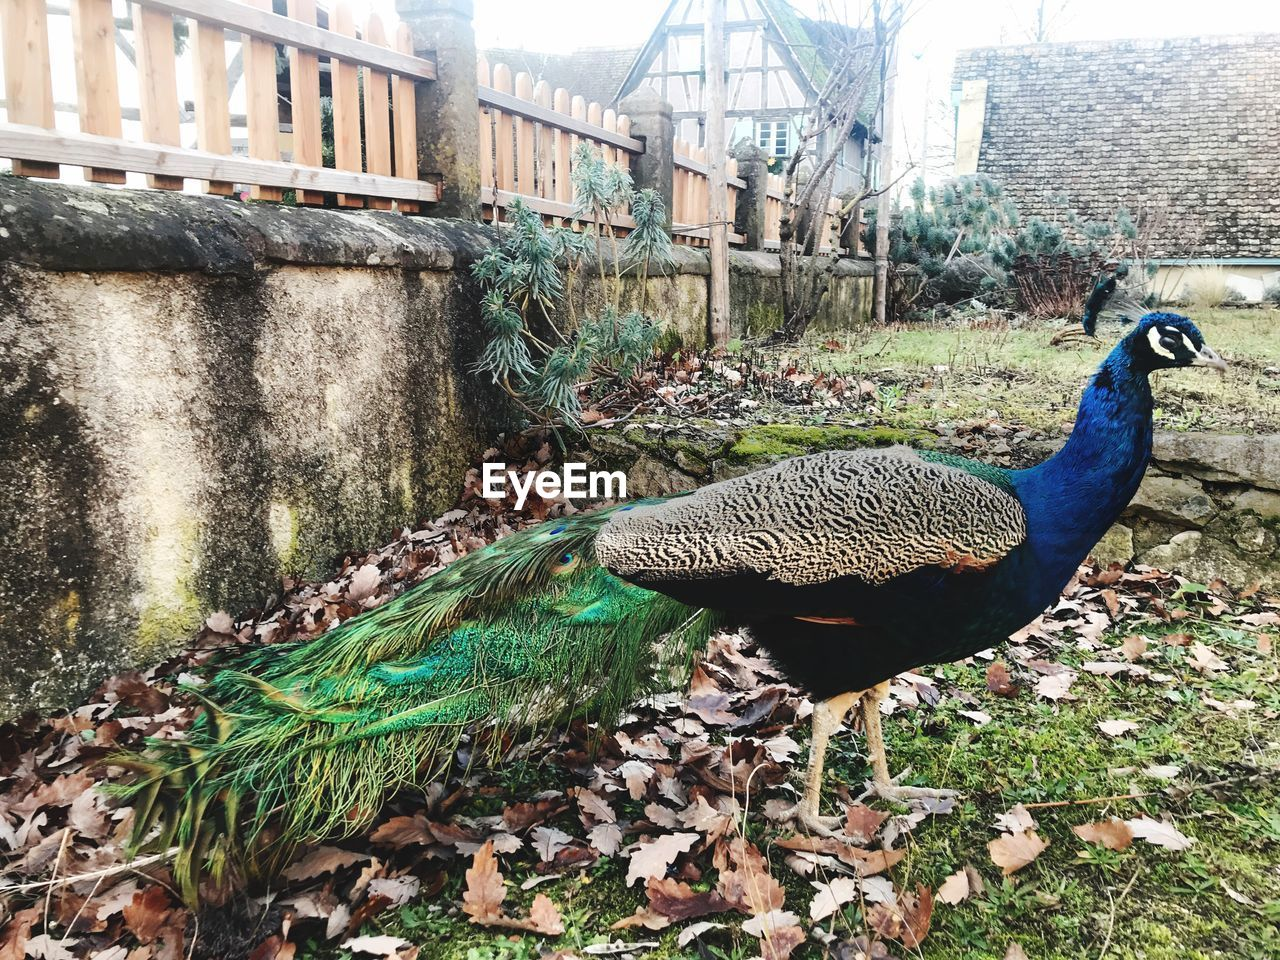 bird, animal themes, day, building exterior, animals in the wild, peacock, built structure, architecture, one animal, outdoors, no people, nature, animal wildlife, water, city, peacock feather